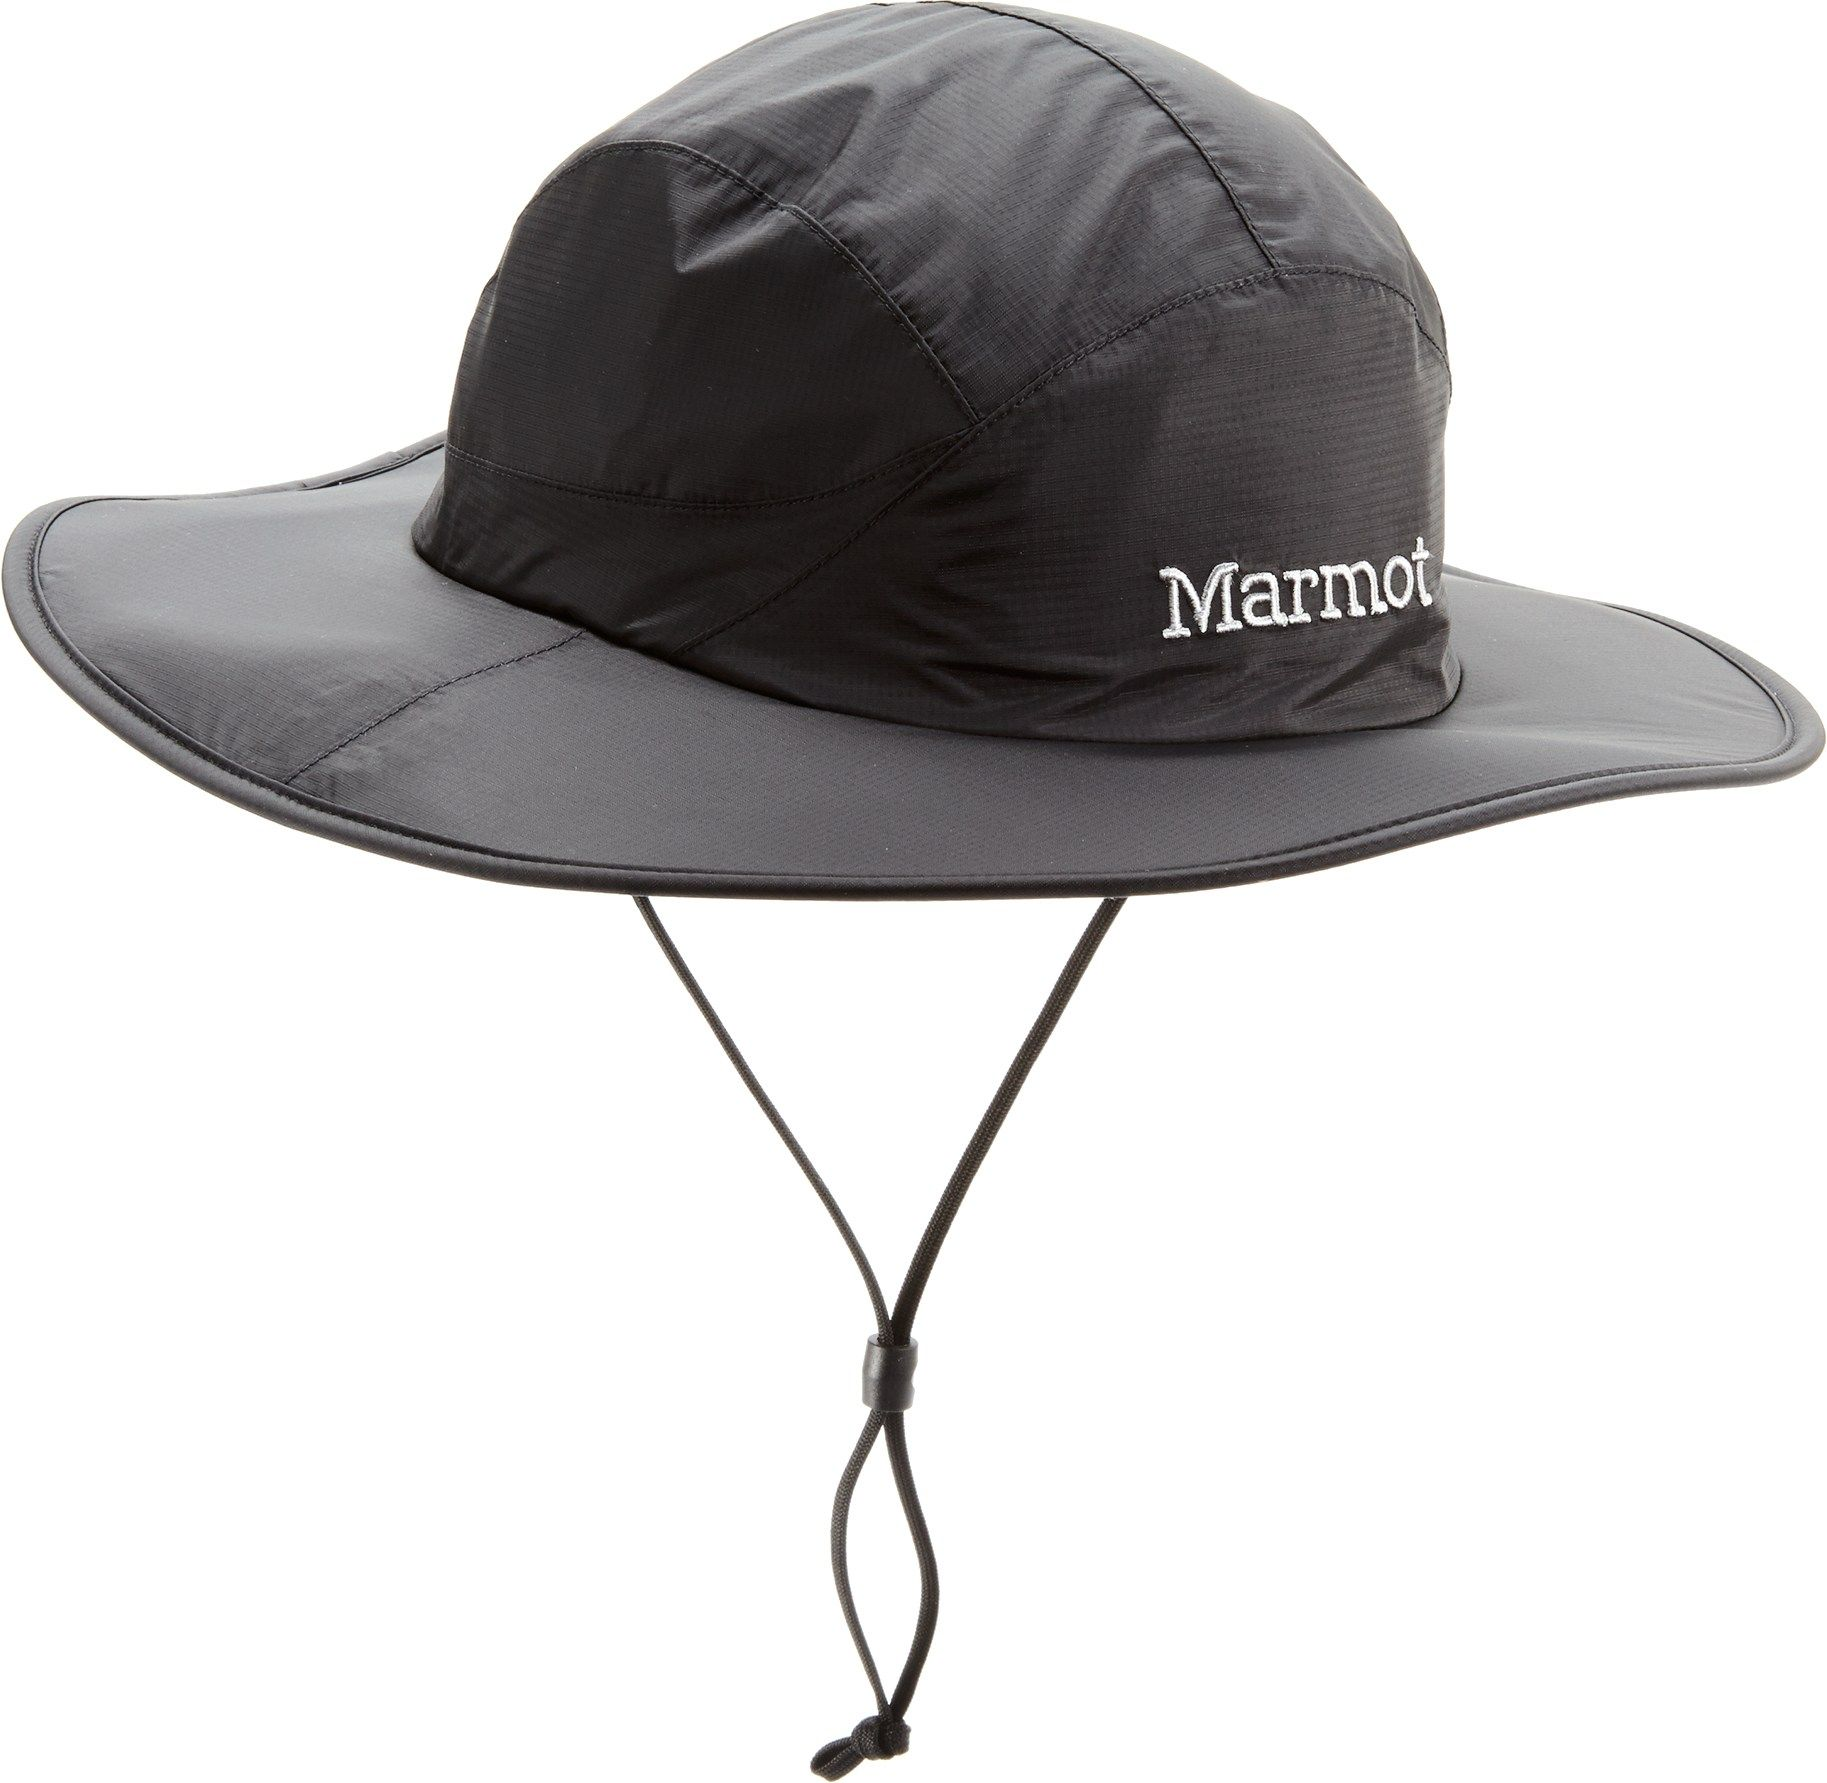 a941a2a5 Marmot PreCip Safari Hat - Men's | REI Co-op | *Apparel ...